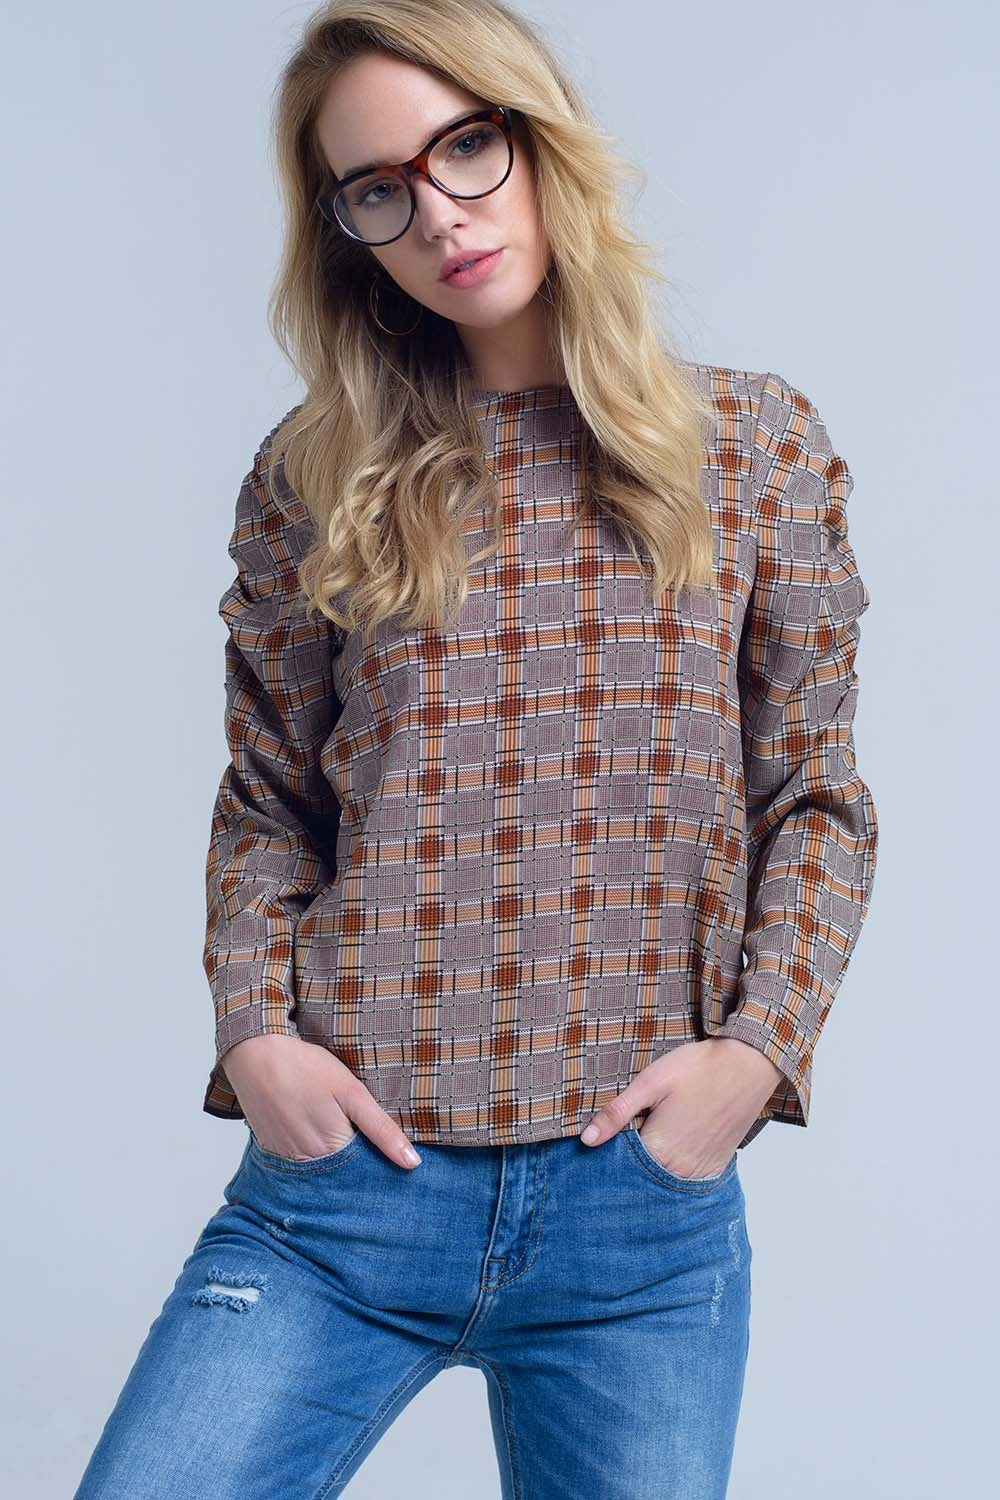 Top Marron Con Estampado A Cuadros